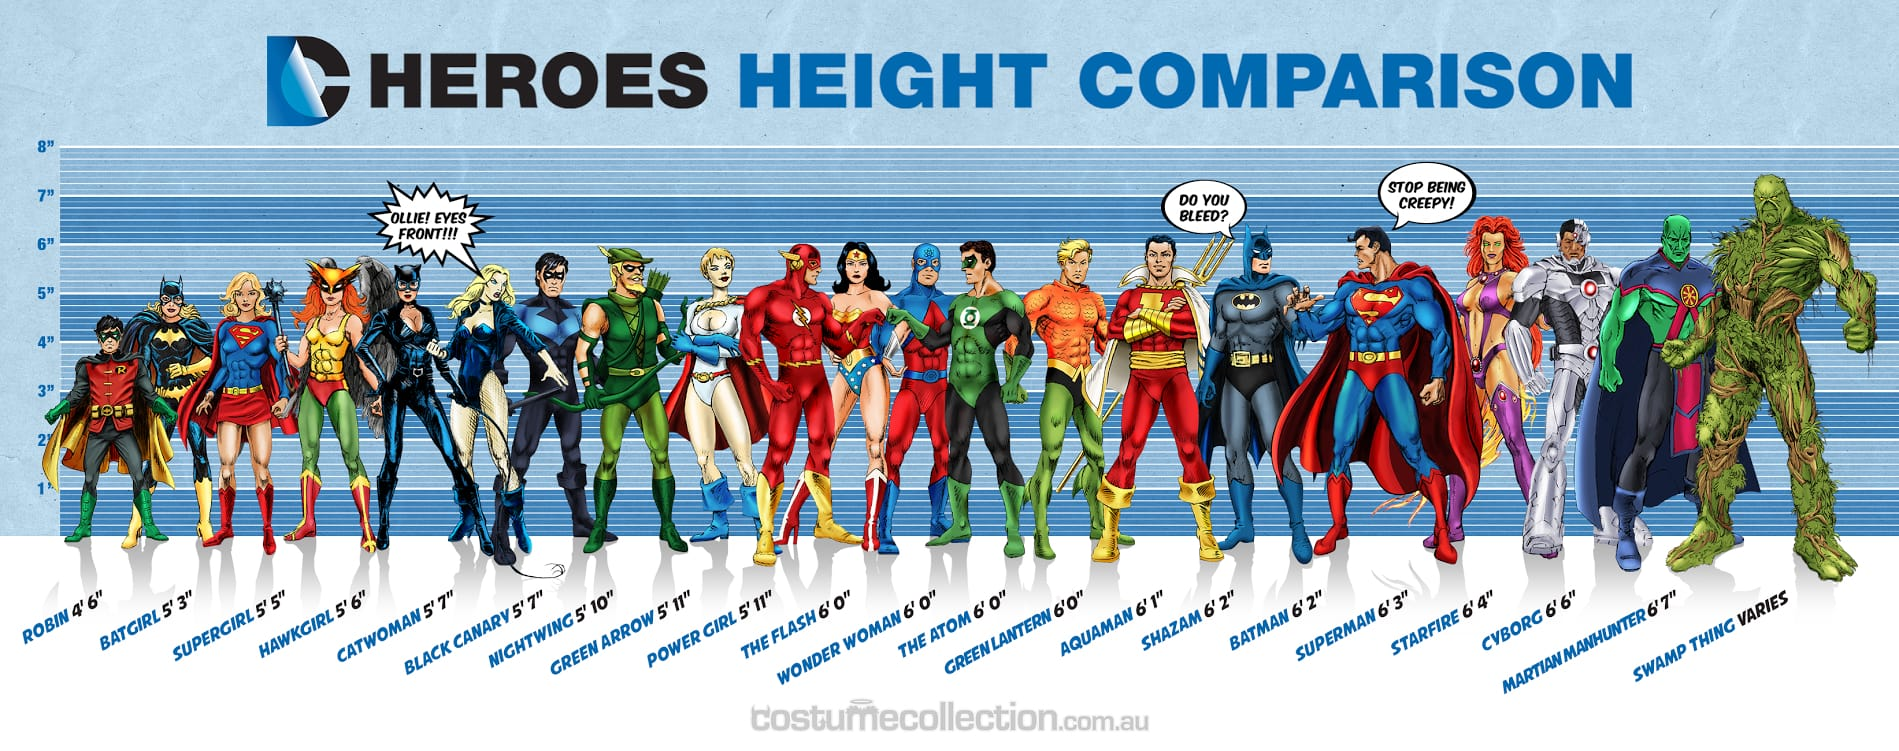 dc-comics-superheroes-height-comparison-chart.jpg